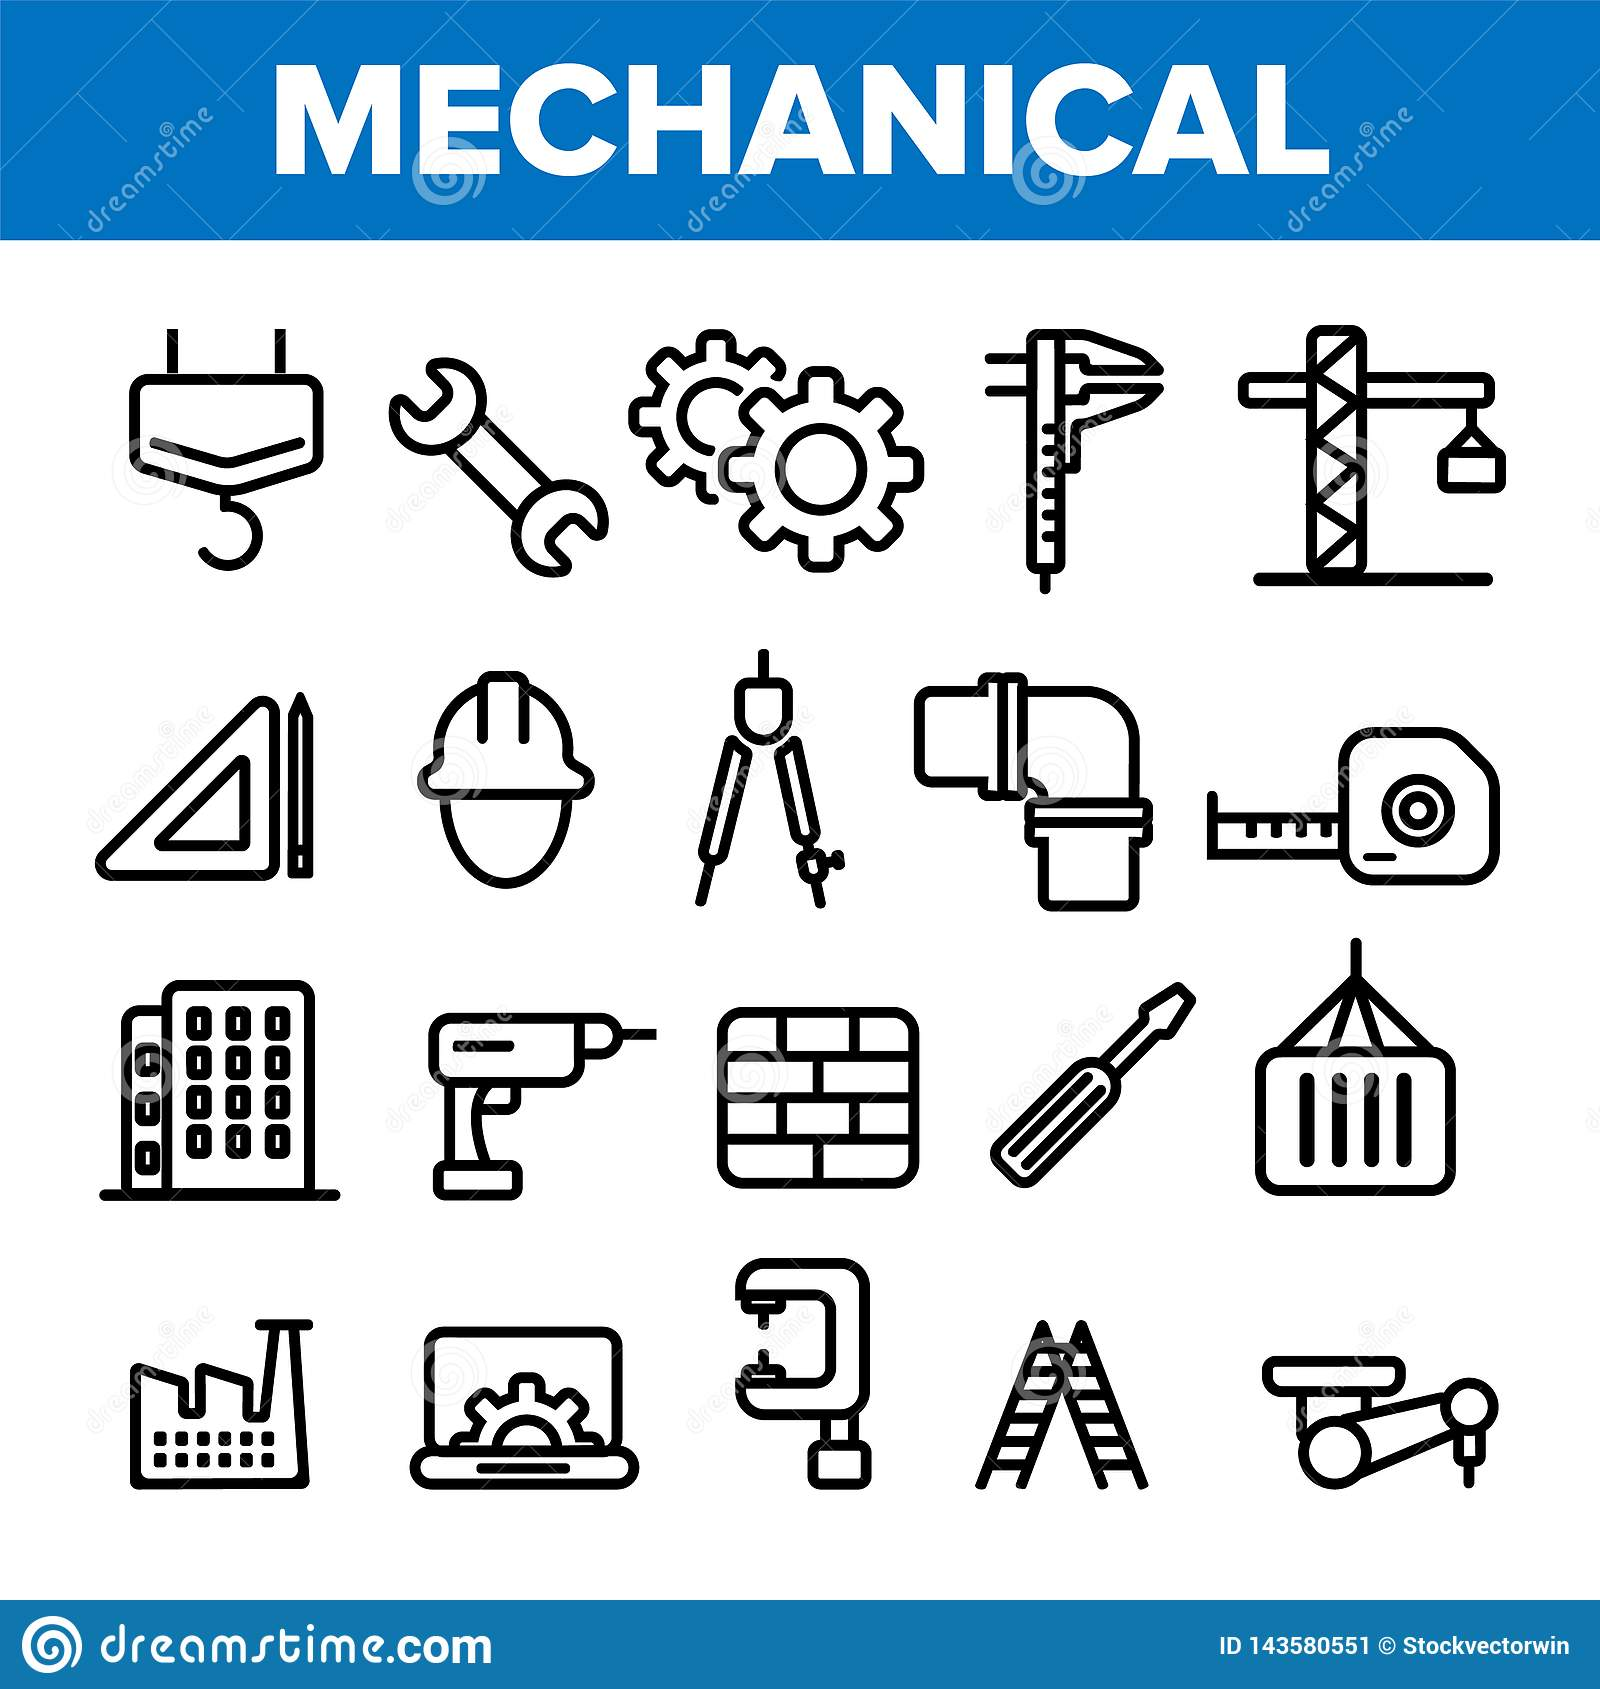 Engineering Line Icon Set Vector. Technician Design. Machinery Engineering Icons. Industrial Factory Production. Thin